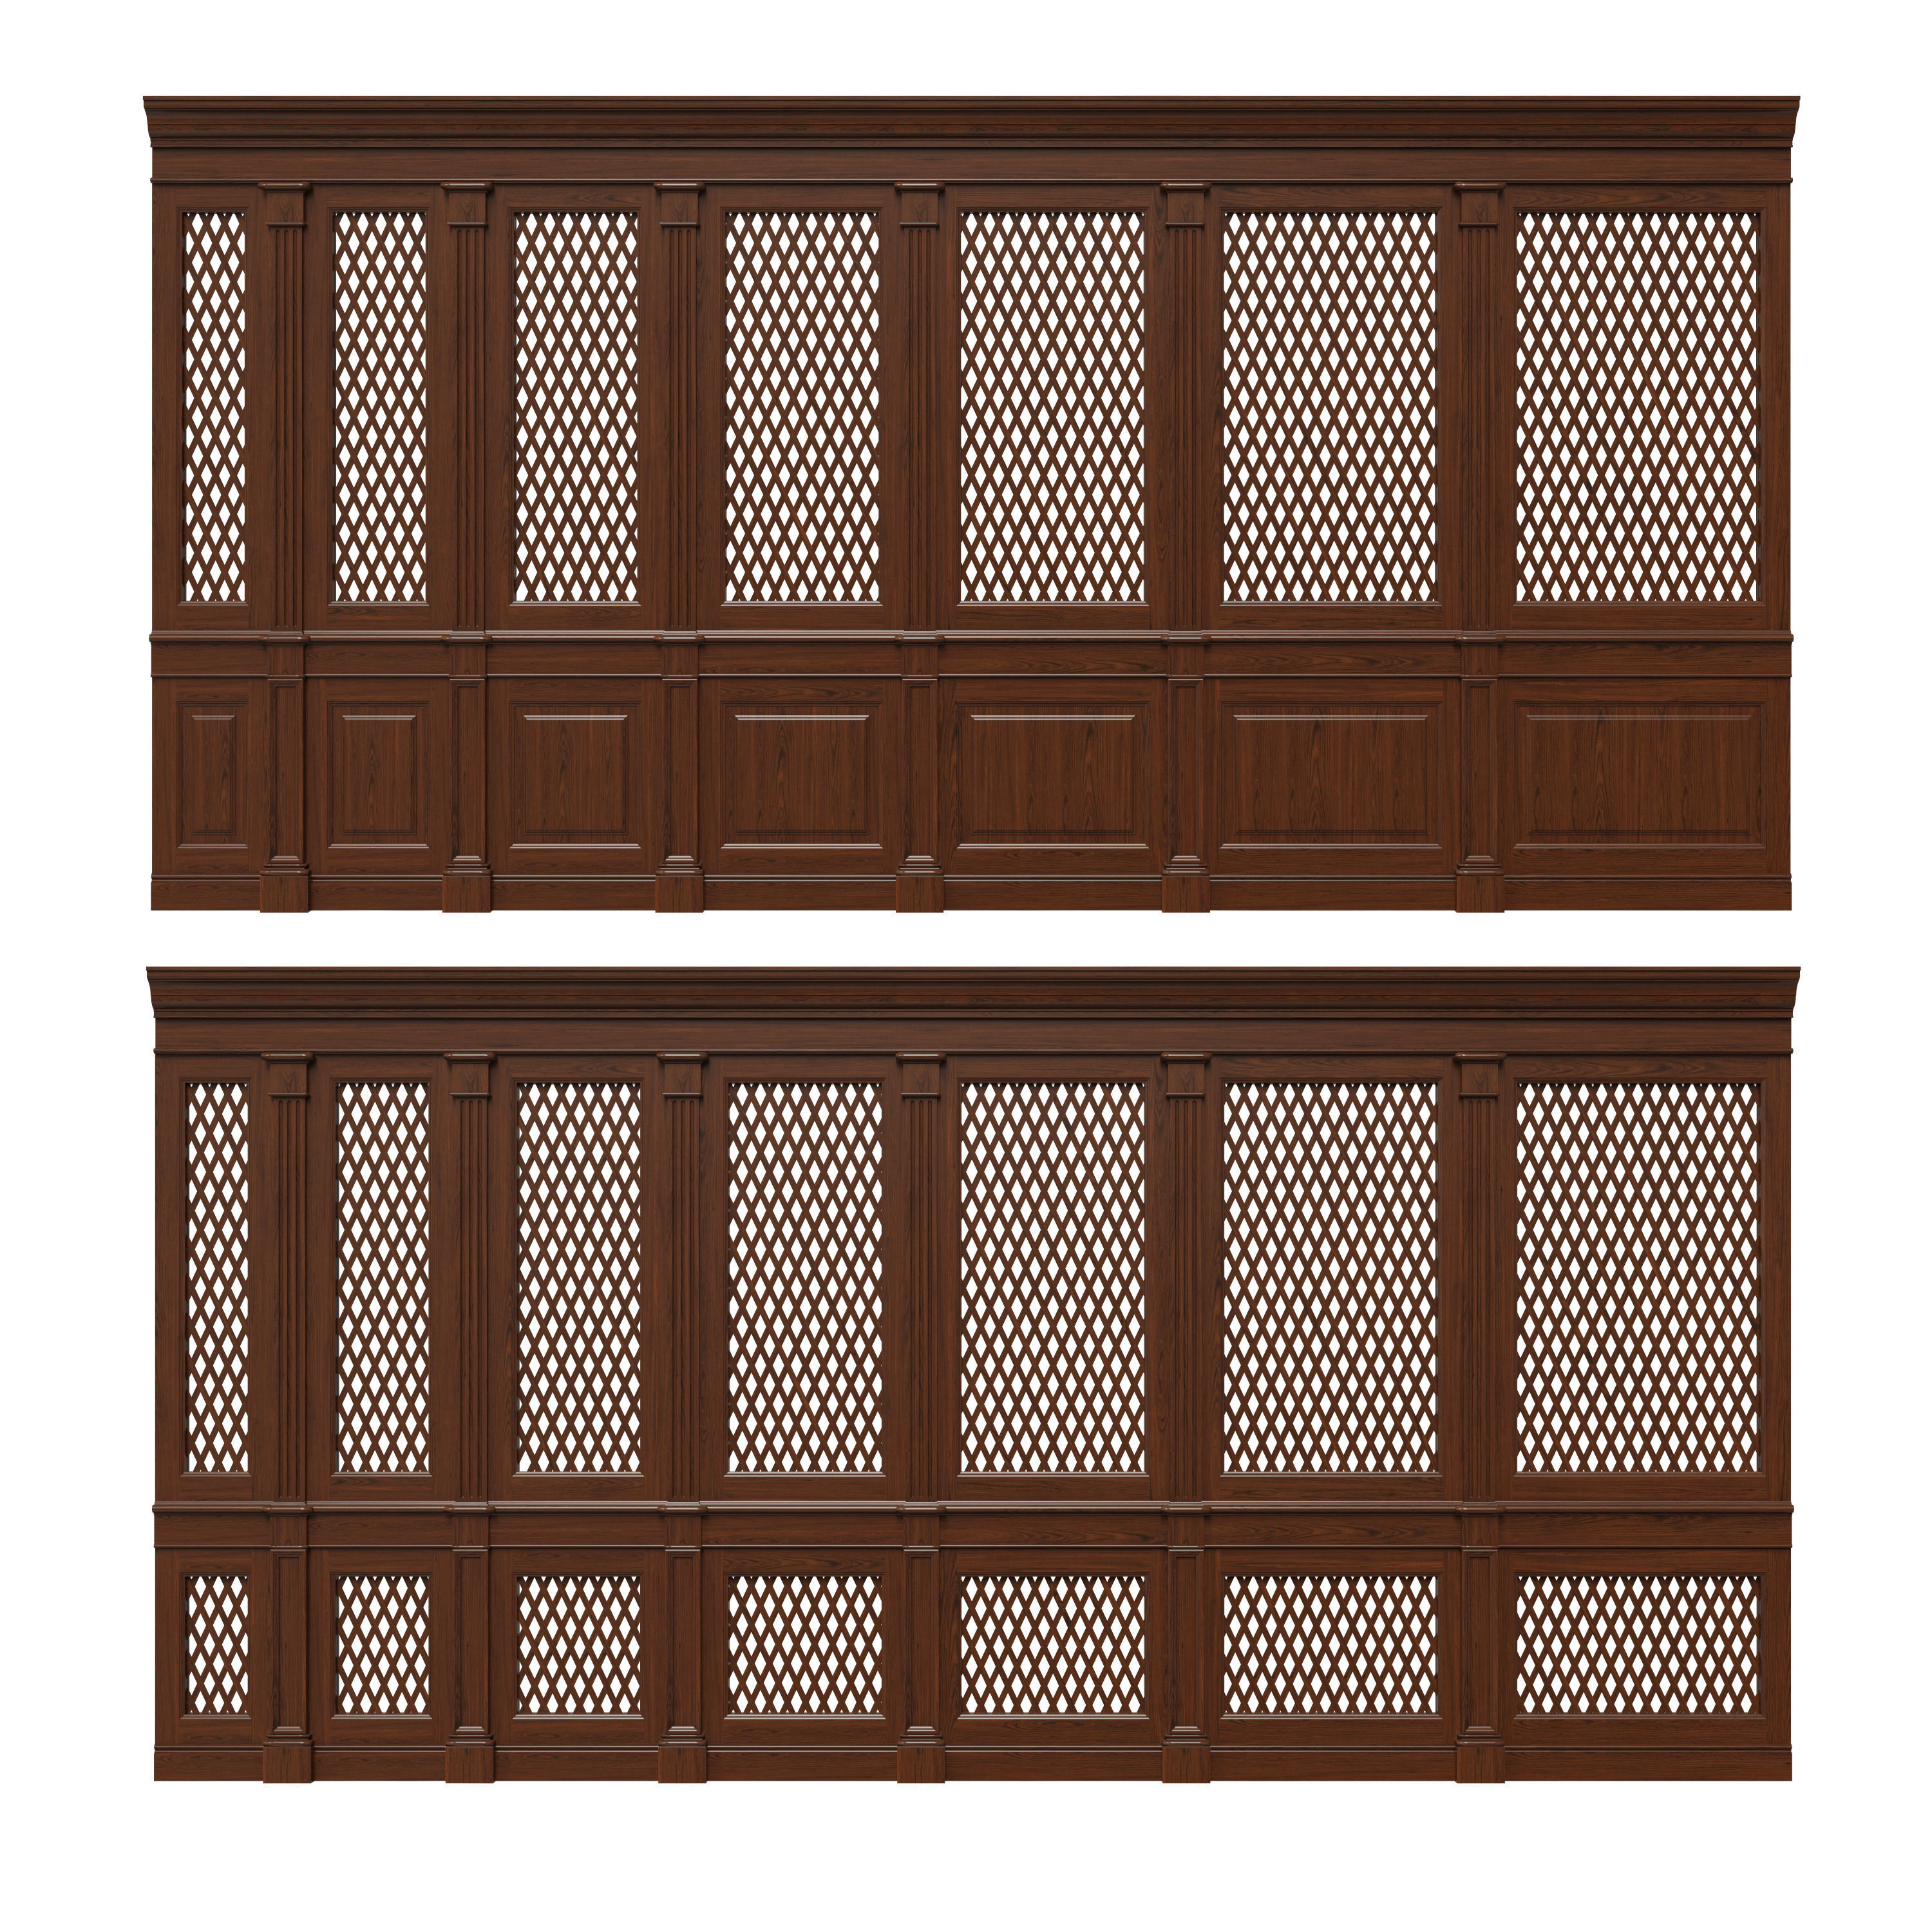 Wooden panels with lattice